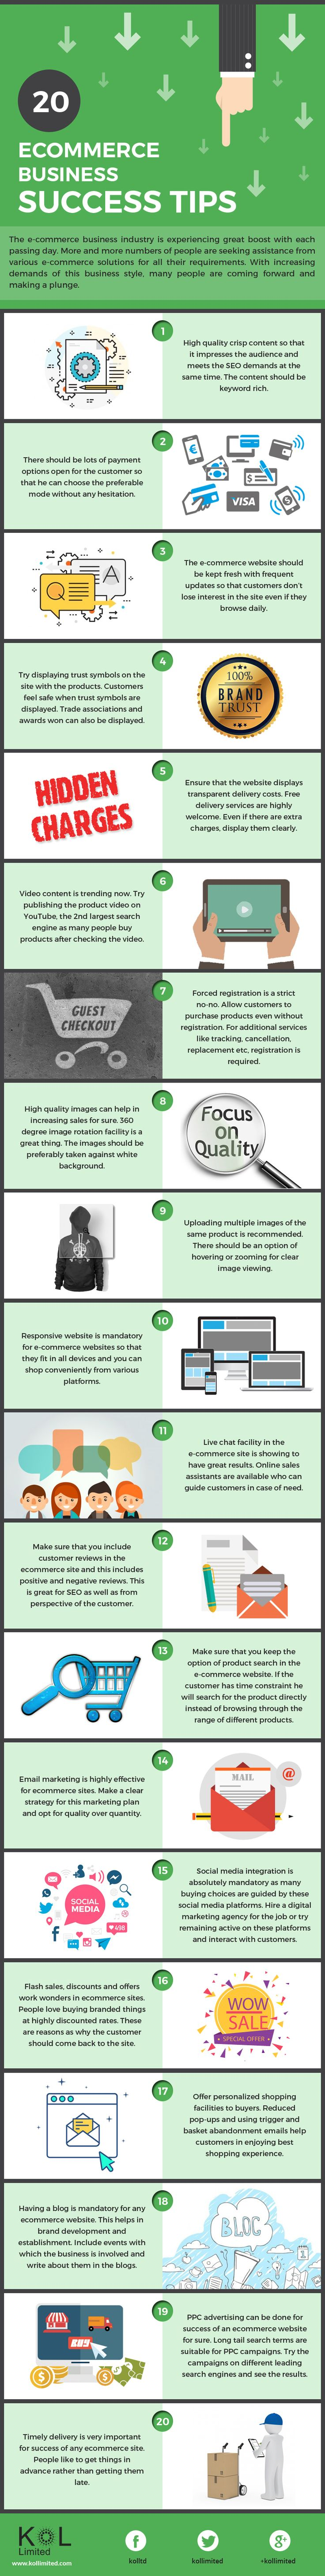 20 Tips for Ecommerce Business Success [Infographic]